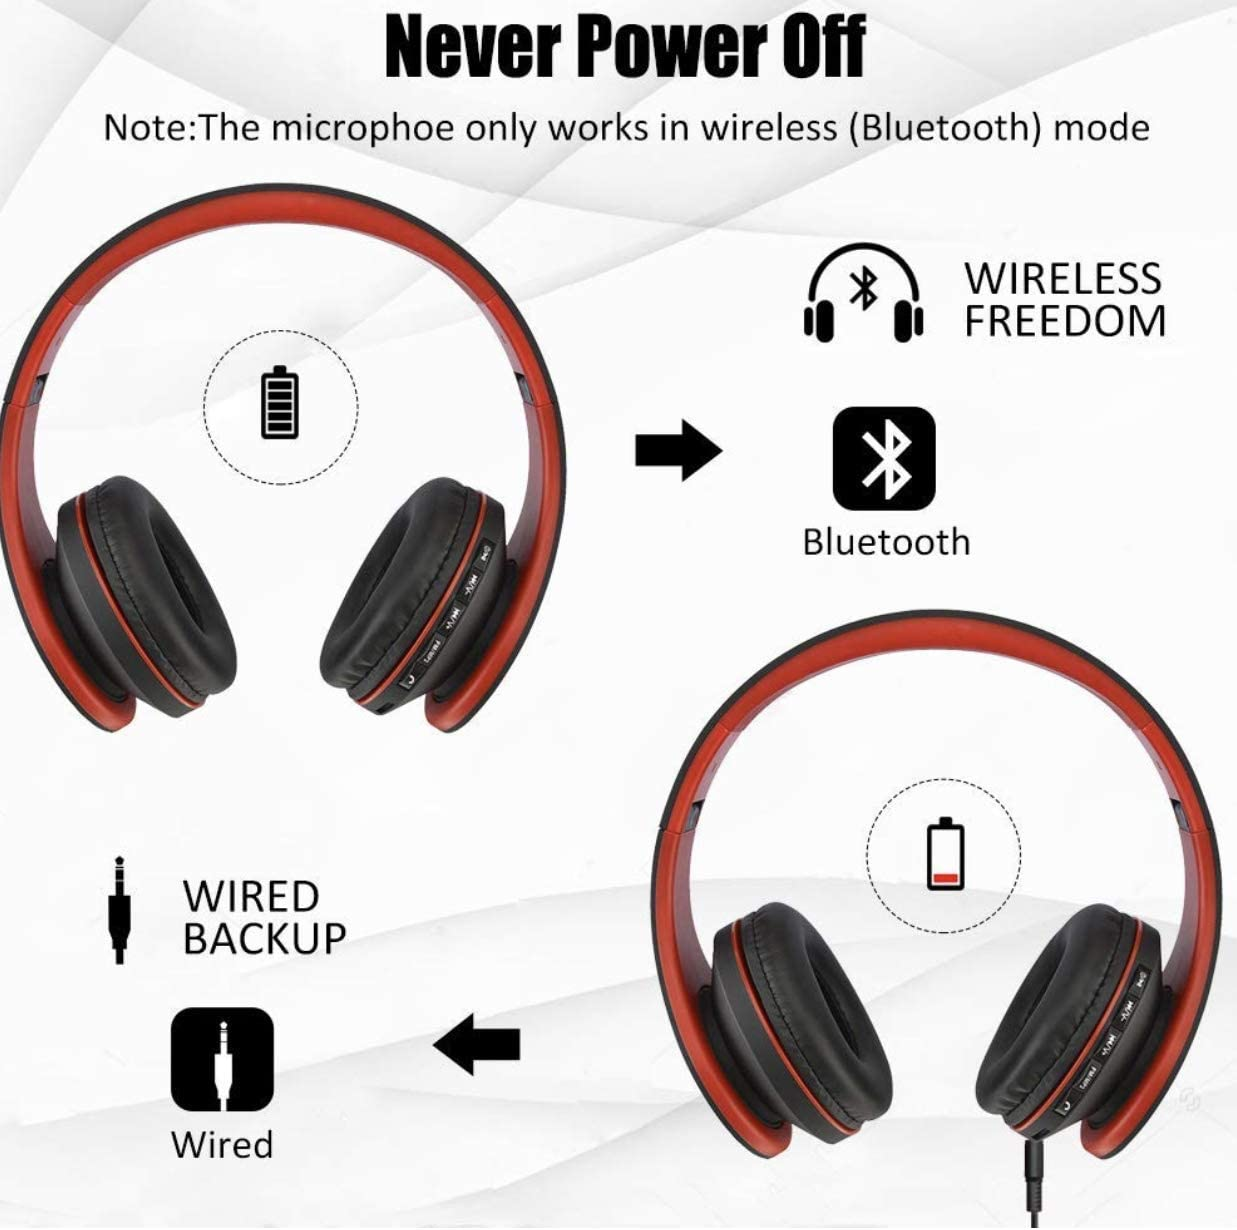 Wireless Foldable Headphones, Bluetooth Over-Ear Stereo Earbuds Wired Headsets with Built-in Microphone with 3.5mm Jack by Mikicat Black Red